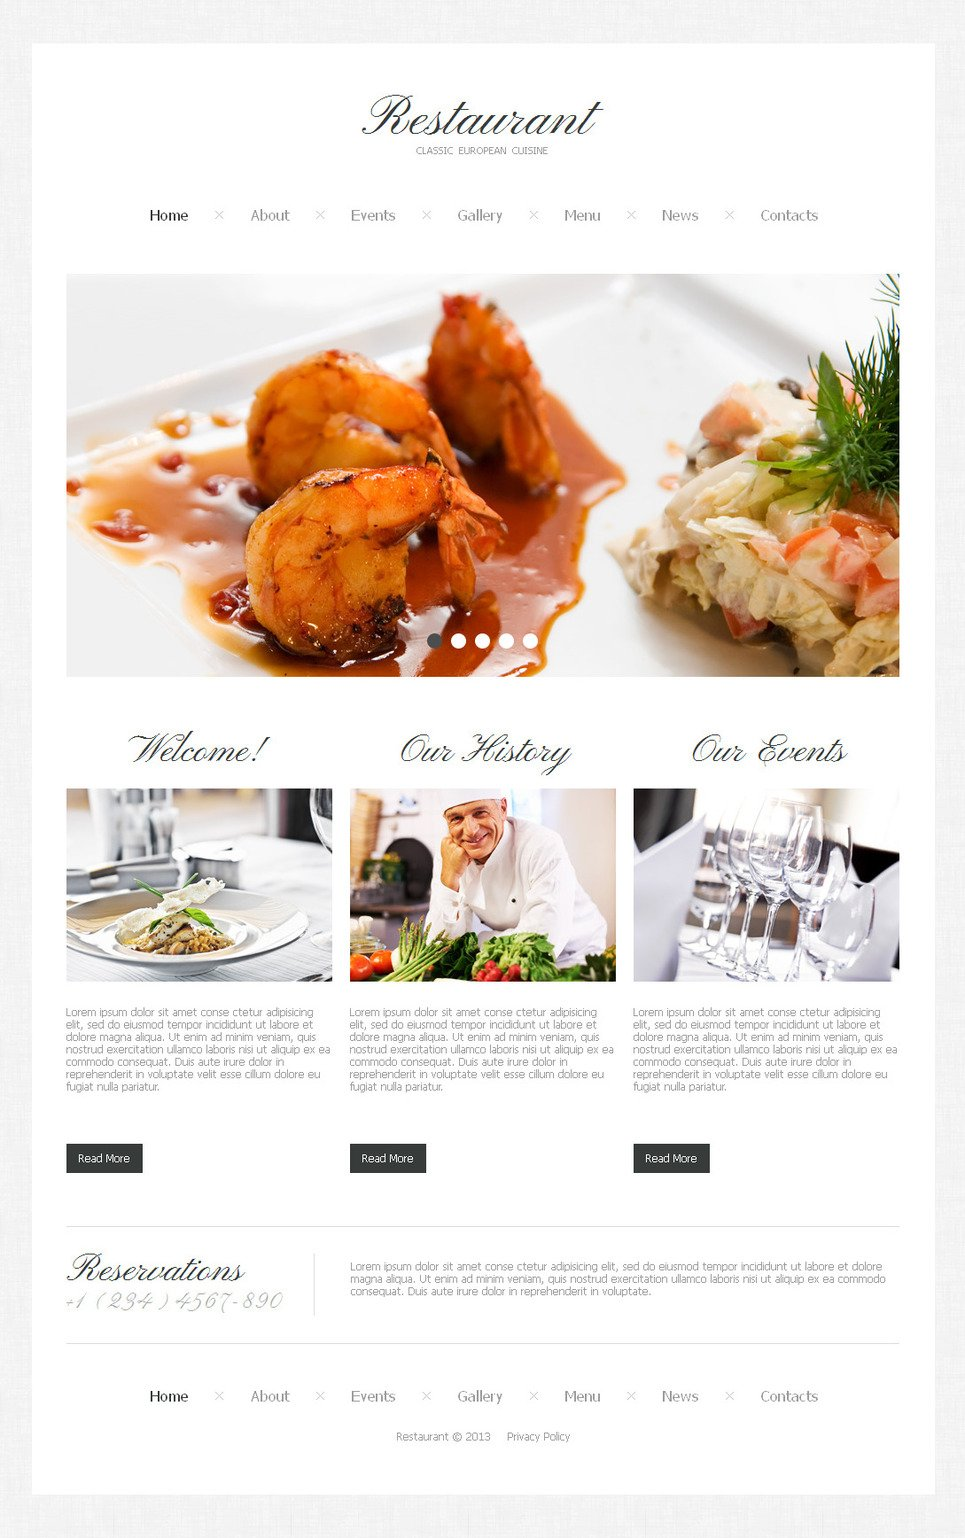 Restaurant Website Template for Classic European Cuisine Lovers - image